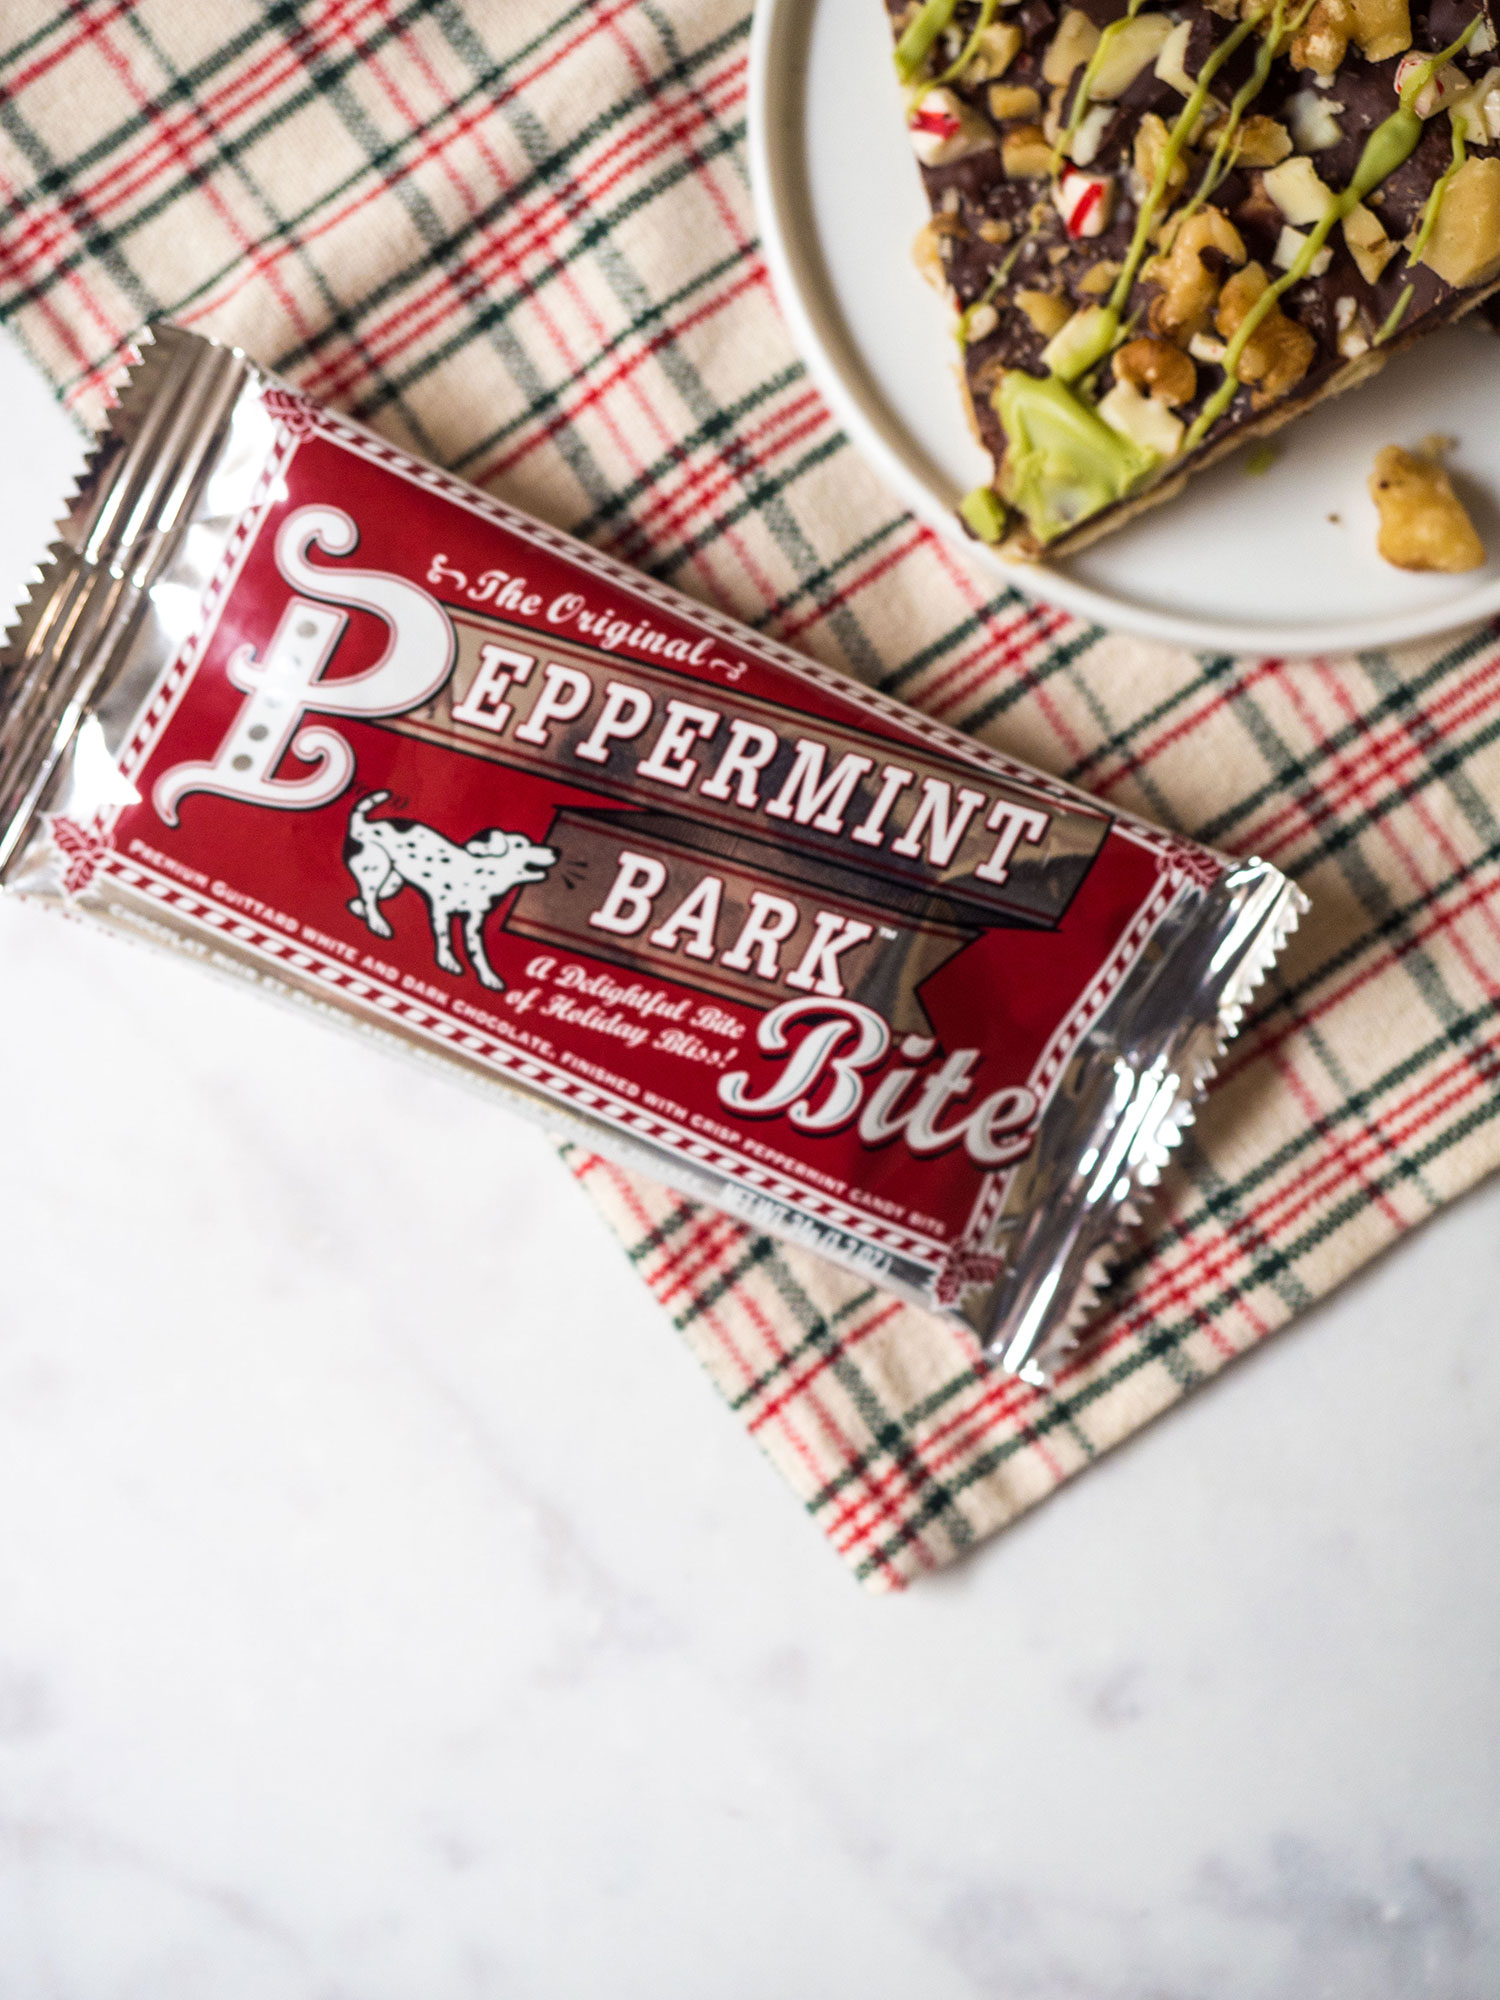 This Christmas toffee has all the holiday magic! Crispy saltines, rich toffee and chocolate, peppermint and white chocolate matcha drizzles. It will become an instant family favorite.